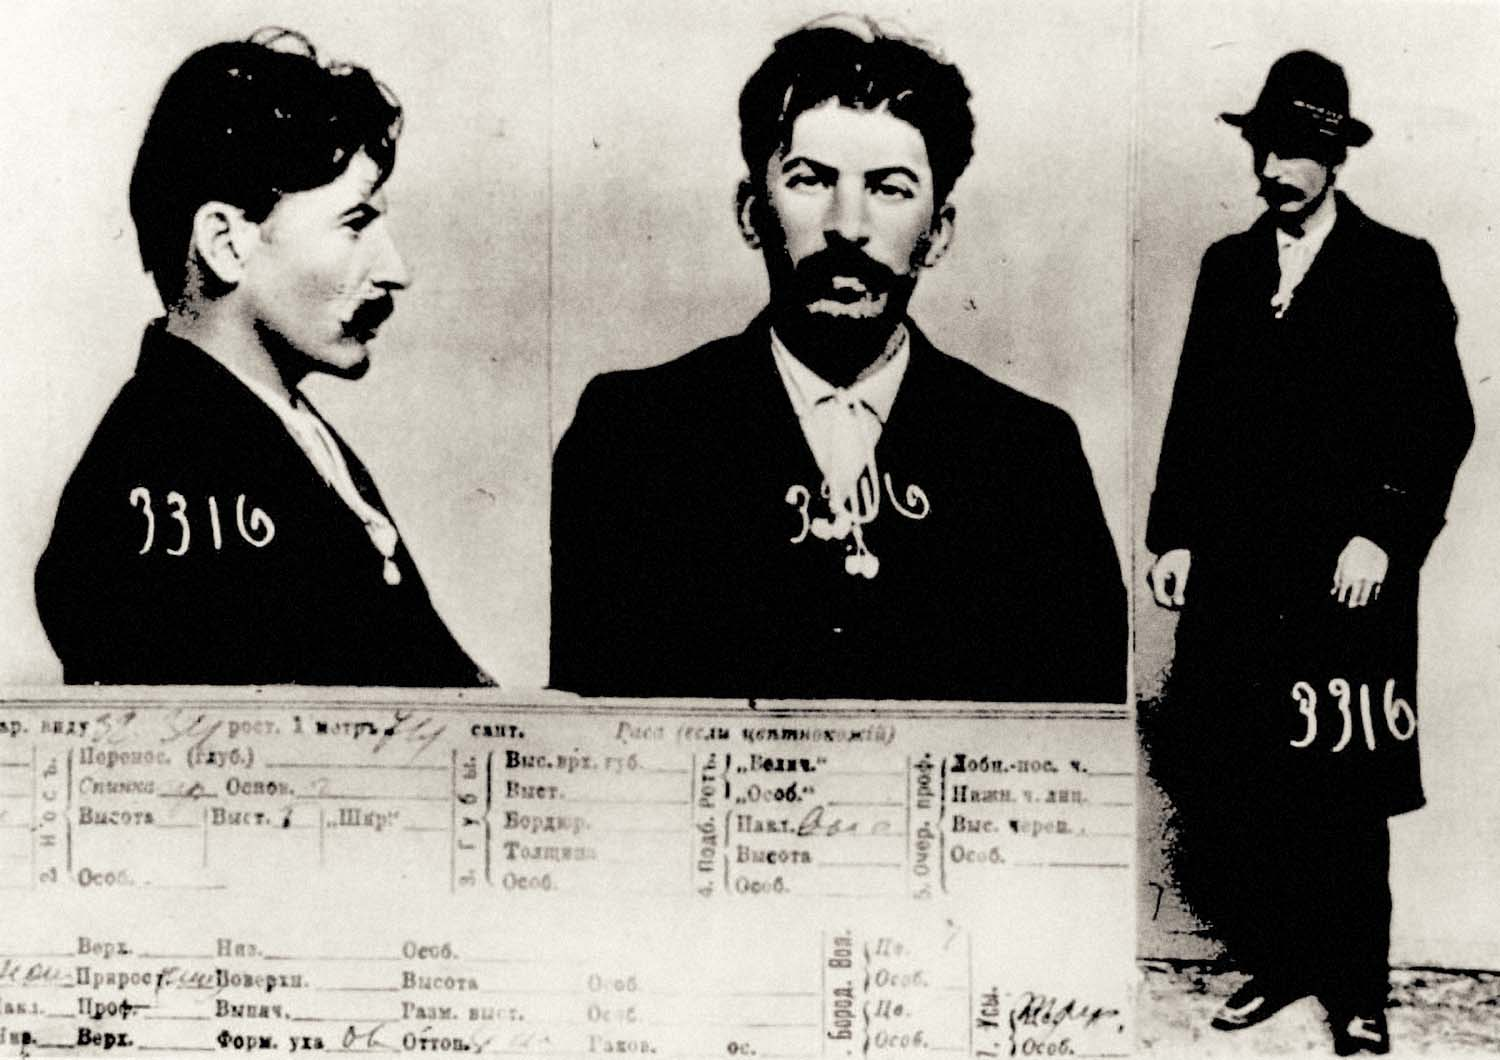 Joseph Stalin mugshot taken by the Tsarist Secret Police in 1911. The future leader of Russia was arrested for terrorism, robbery and revolutionary agitation at Caucasus.